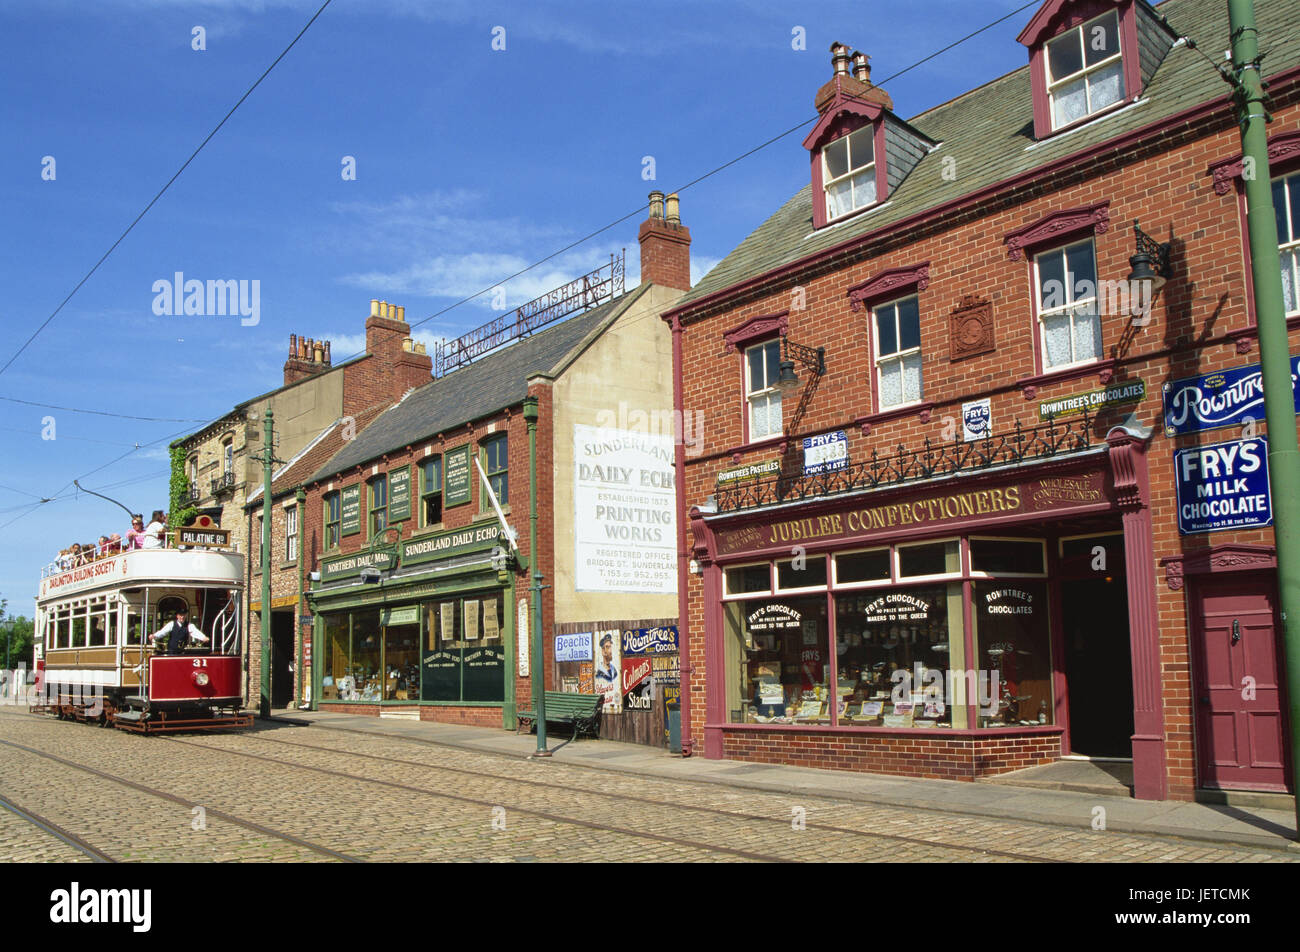 Great Britain, England, Durham, Beamish, Open air museum, house line, tram, Europe, destination, place of interest, - Stock Image